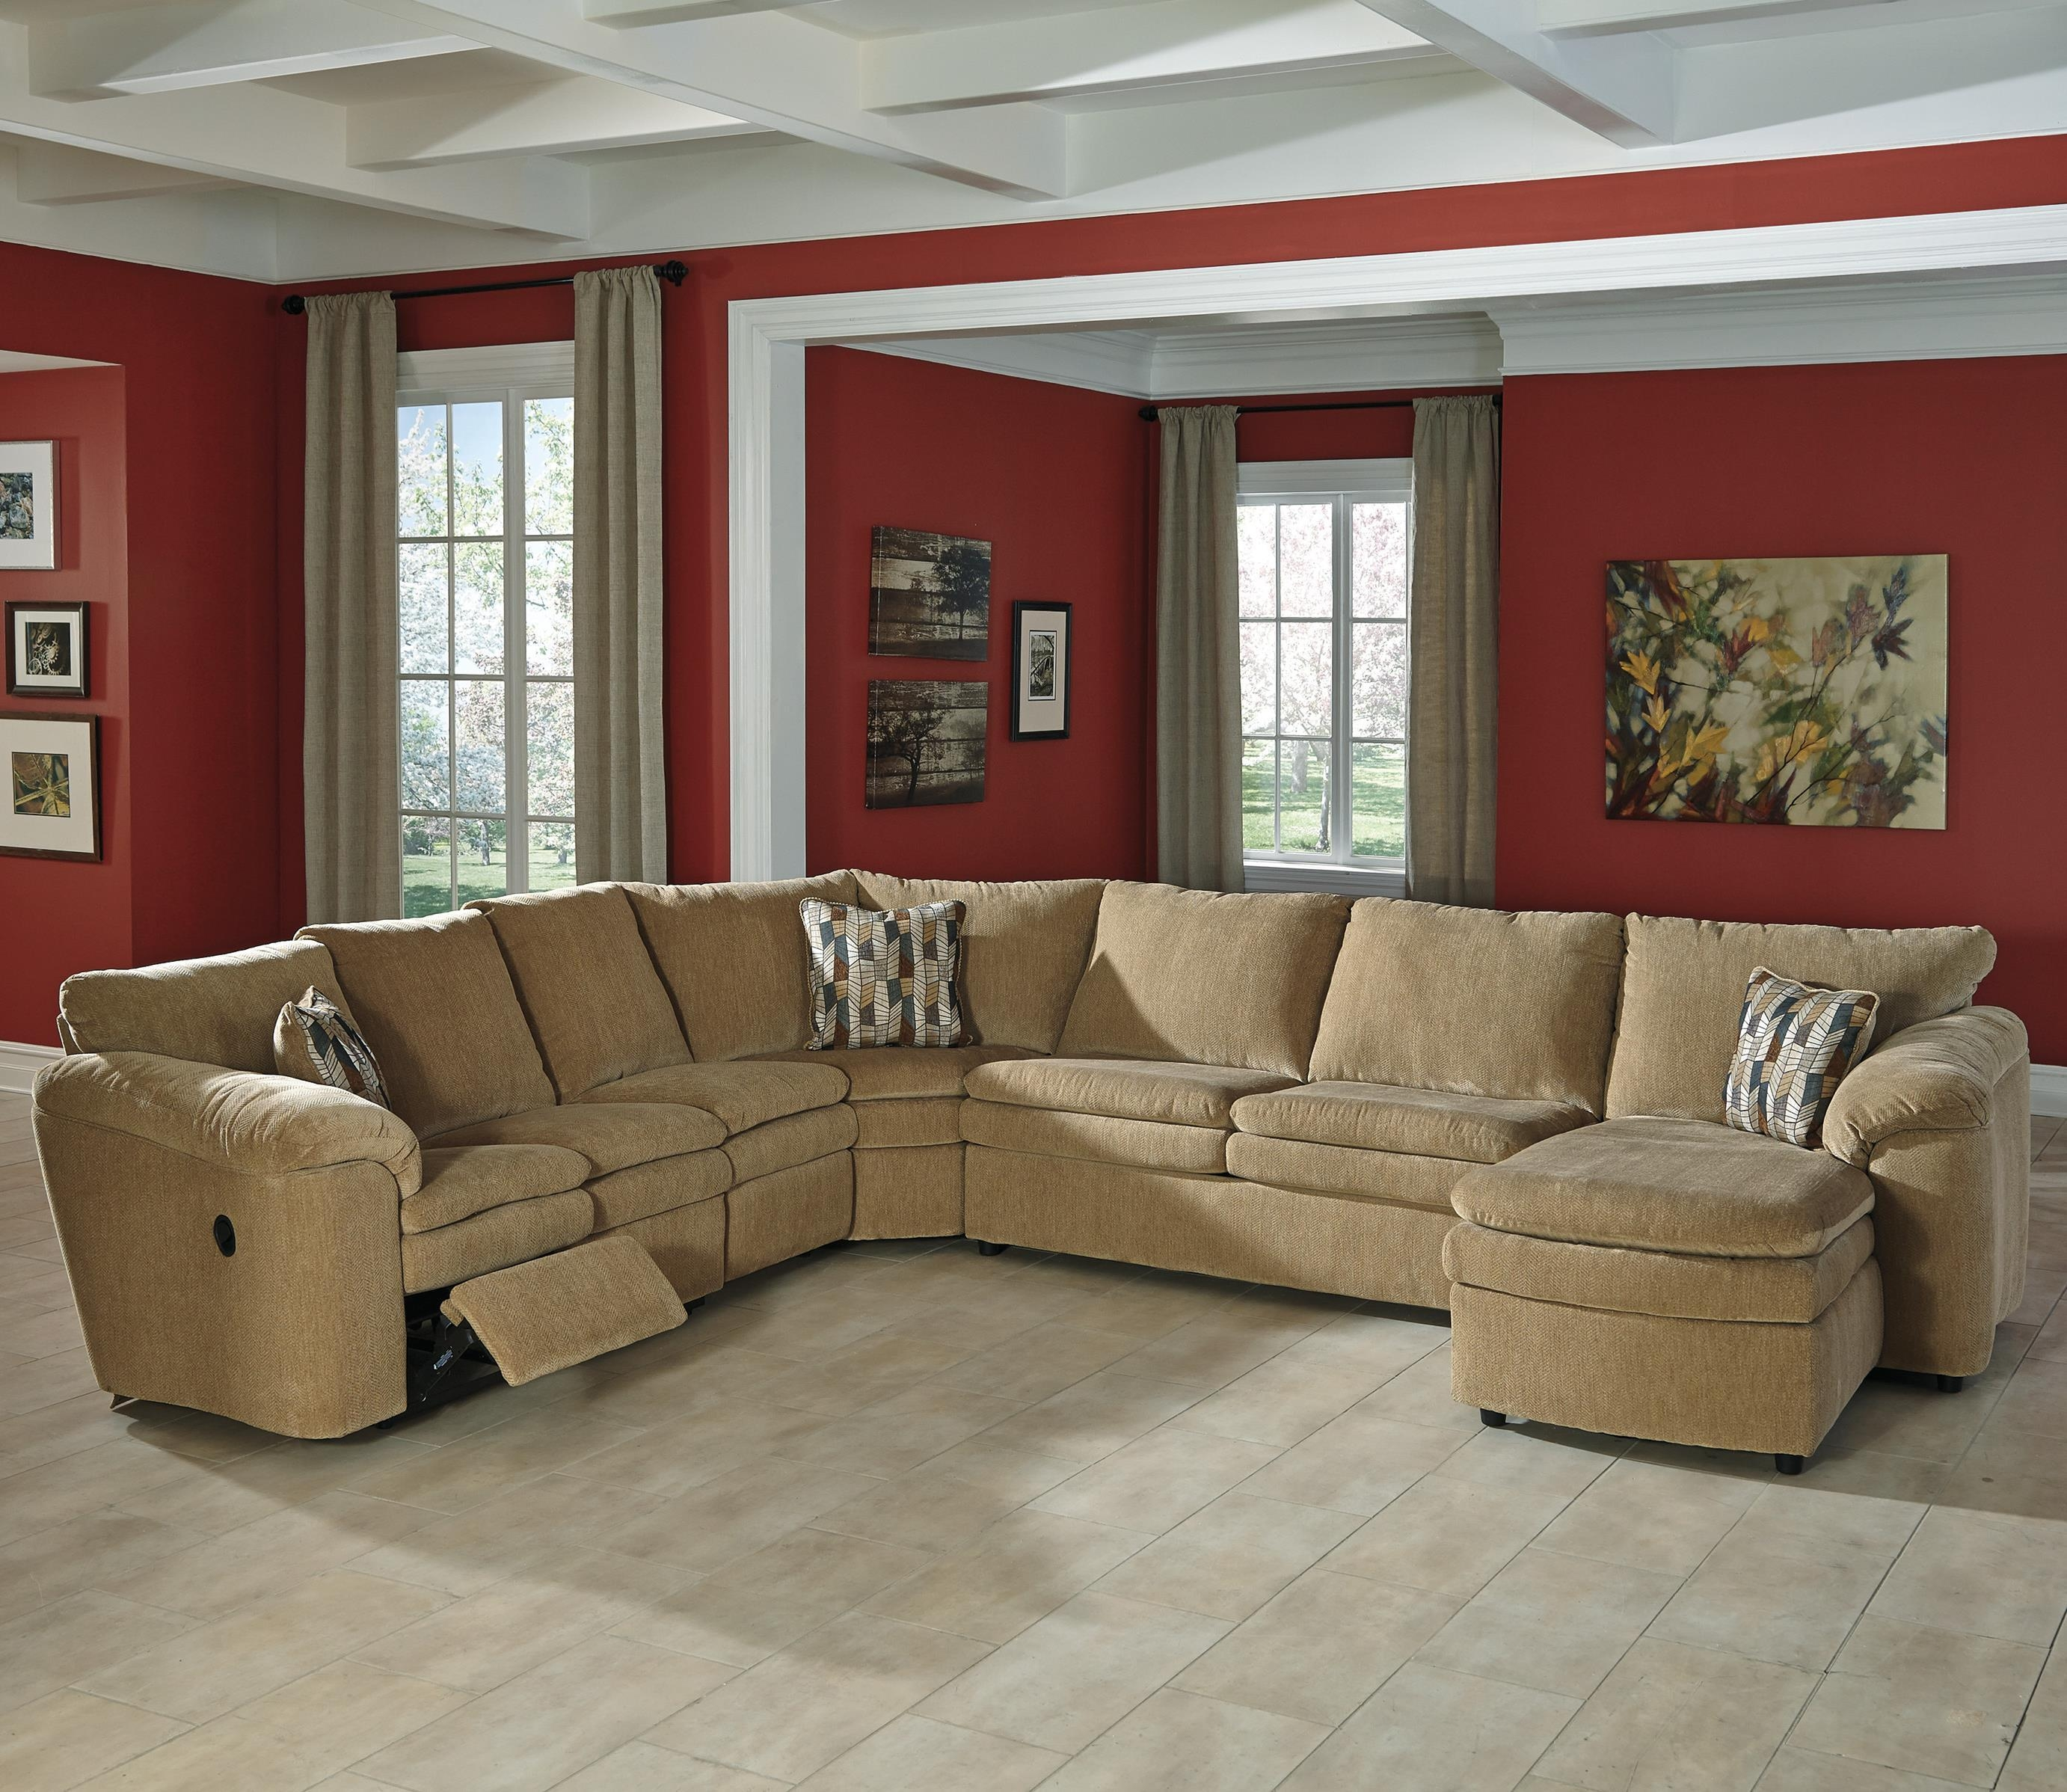 Signature Designashley Coats Casual Contemporary 5 Piece Pertaining To Sectional With Recliner And Sleeper (Image 18 of 20)